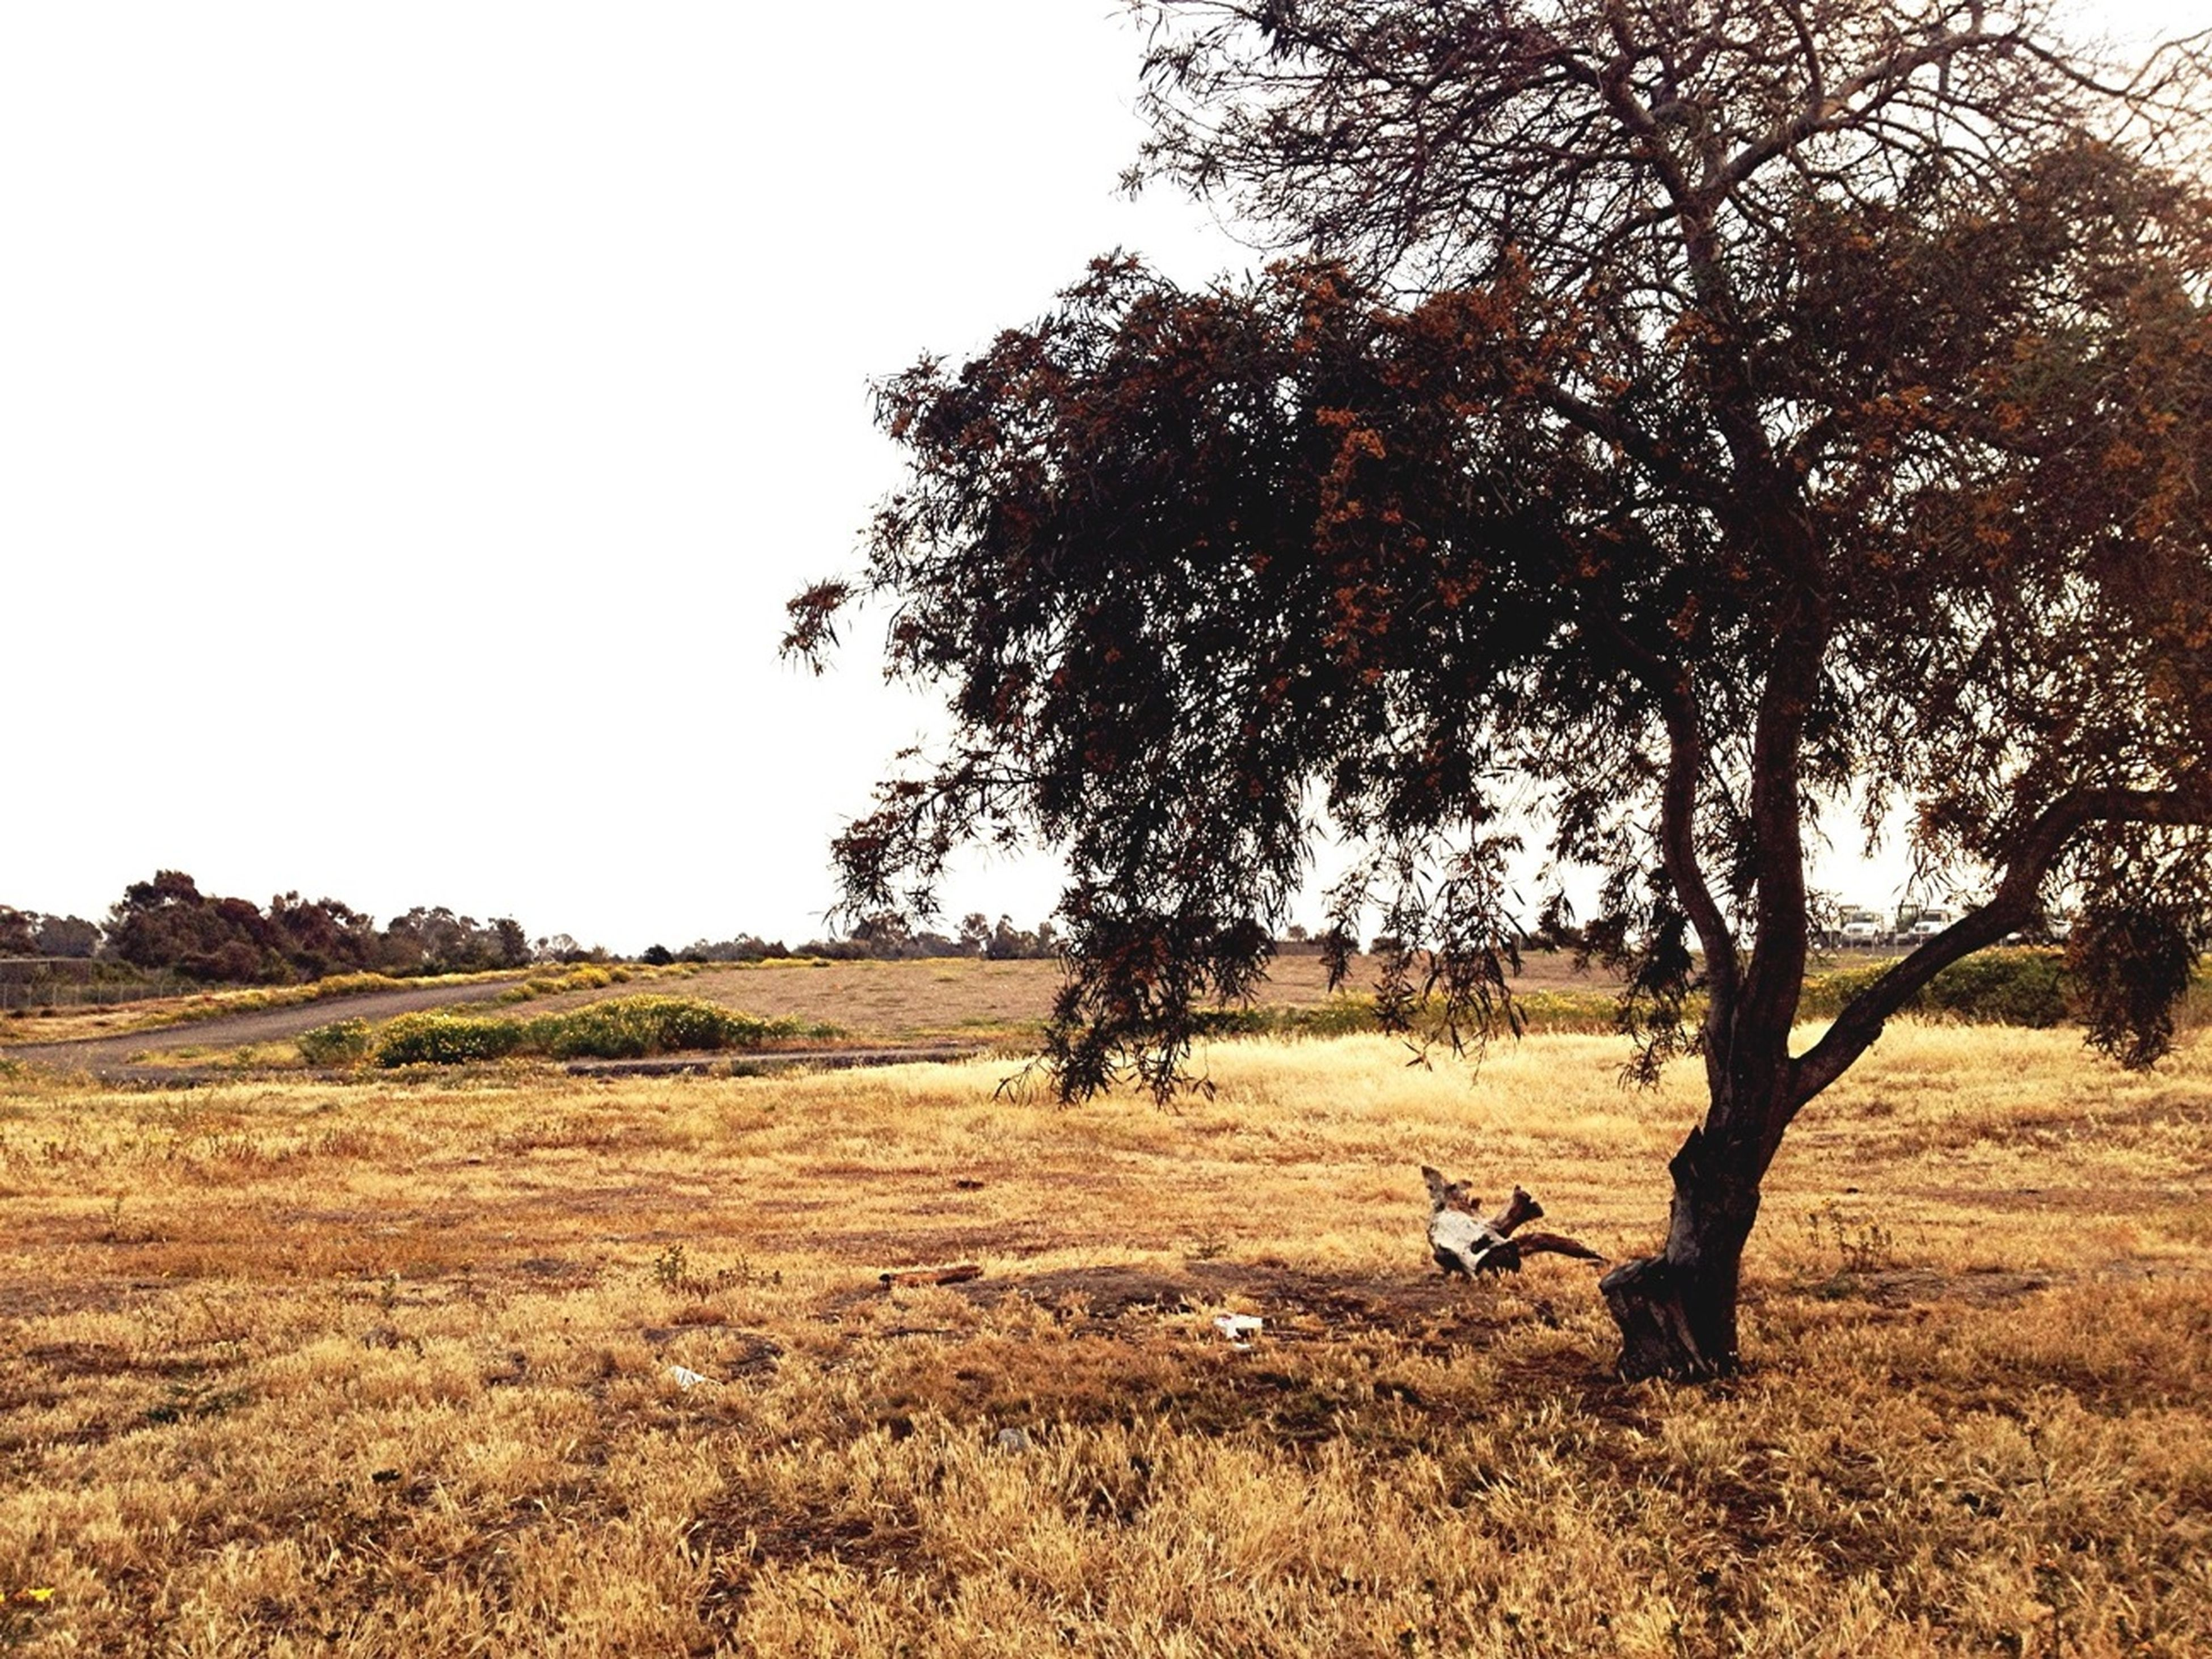 tree, clear sky, tranquility, field, tranquil scene, grass, landscape, nature, animal themes, beauty in nature, scenics, growth, copy space, bare tree, sky, day, grassy, branch, non-urban scene, outdoors